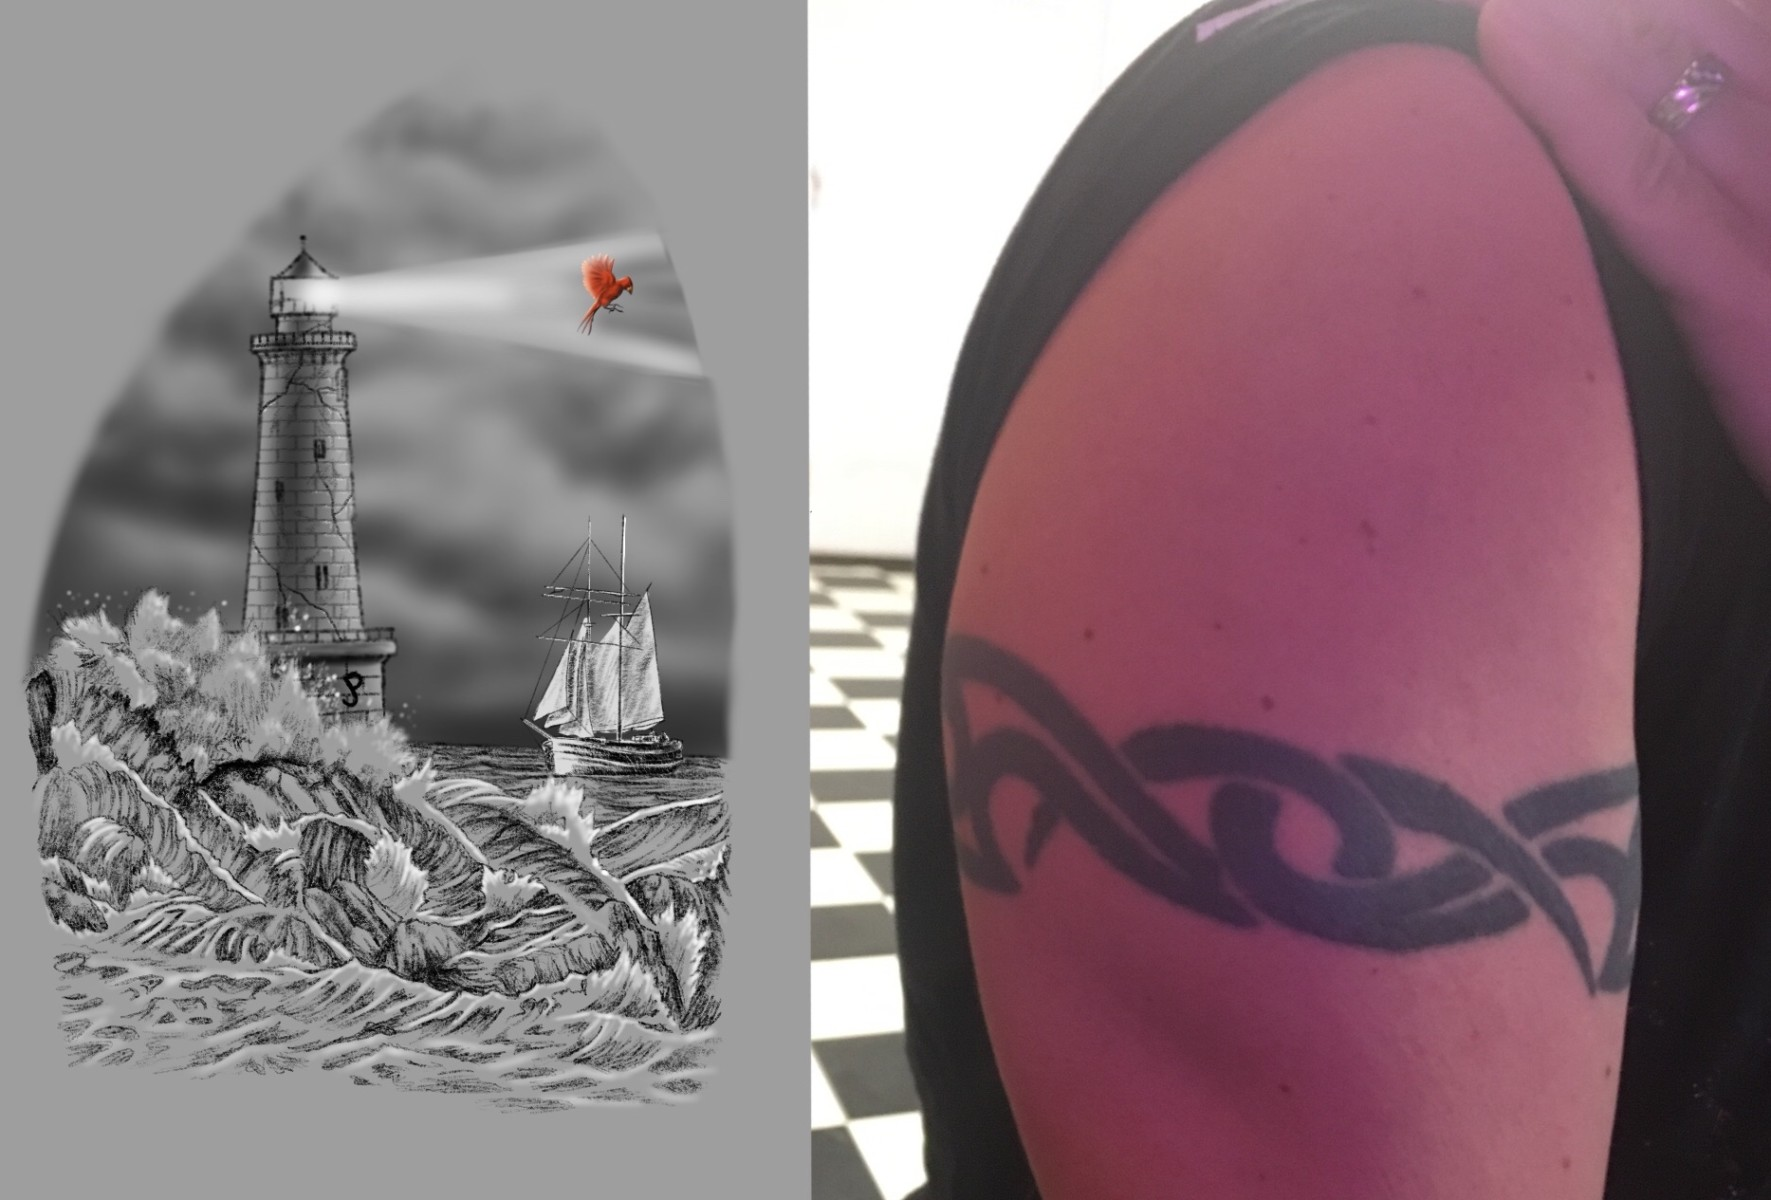 Another reptile and coverup design